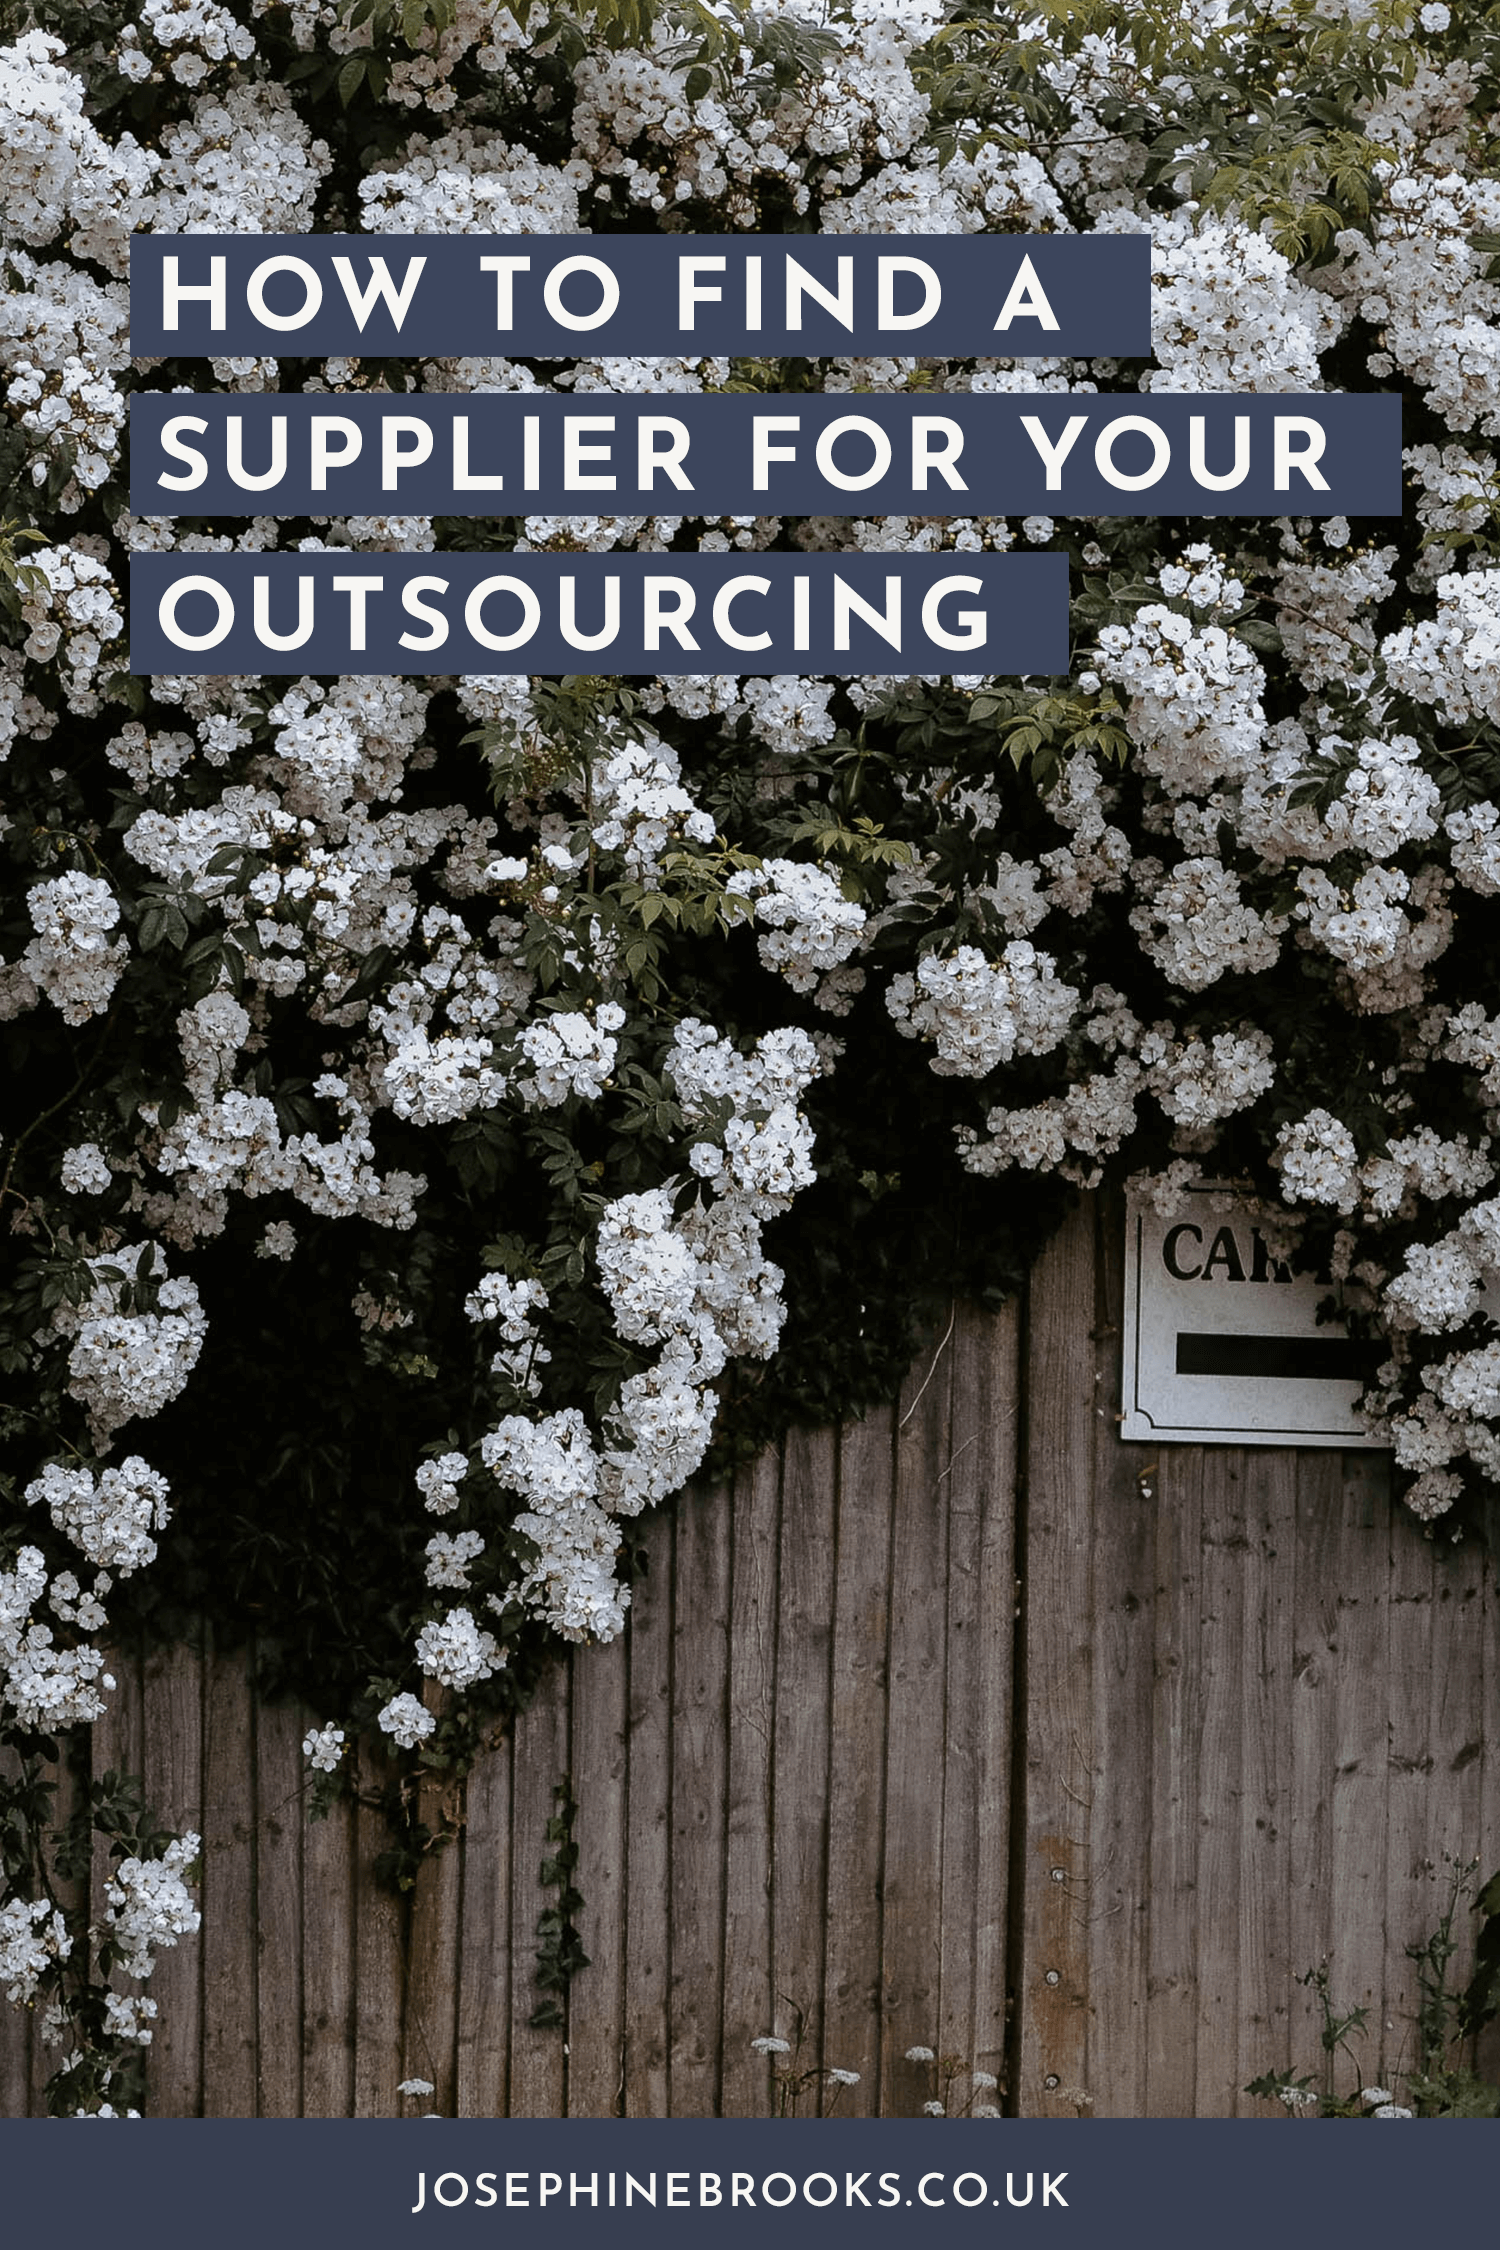 How to find a supplier for your outsourcing, How to outsource in creative business, How to find a supplier for your outsourcing, where you can be outsourcing in your business, Creative business outsourcing, Find a supplier for outsourcing tasks, Find help with your creative business, Maker business outsourcing | Josephine Brooks